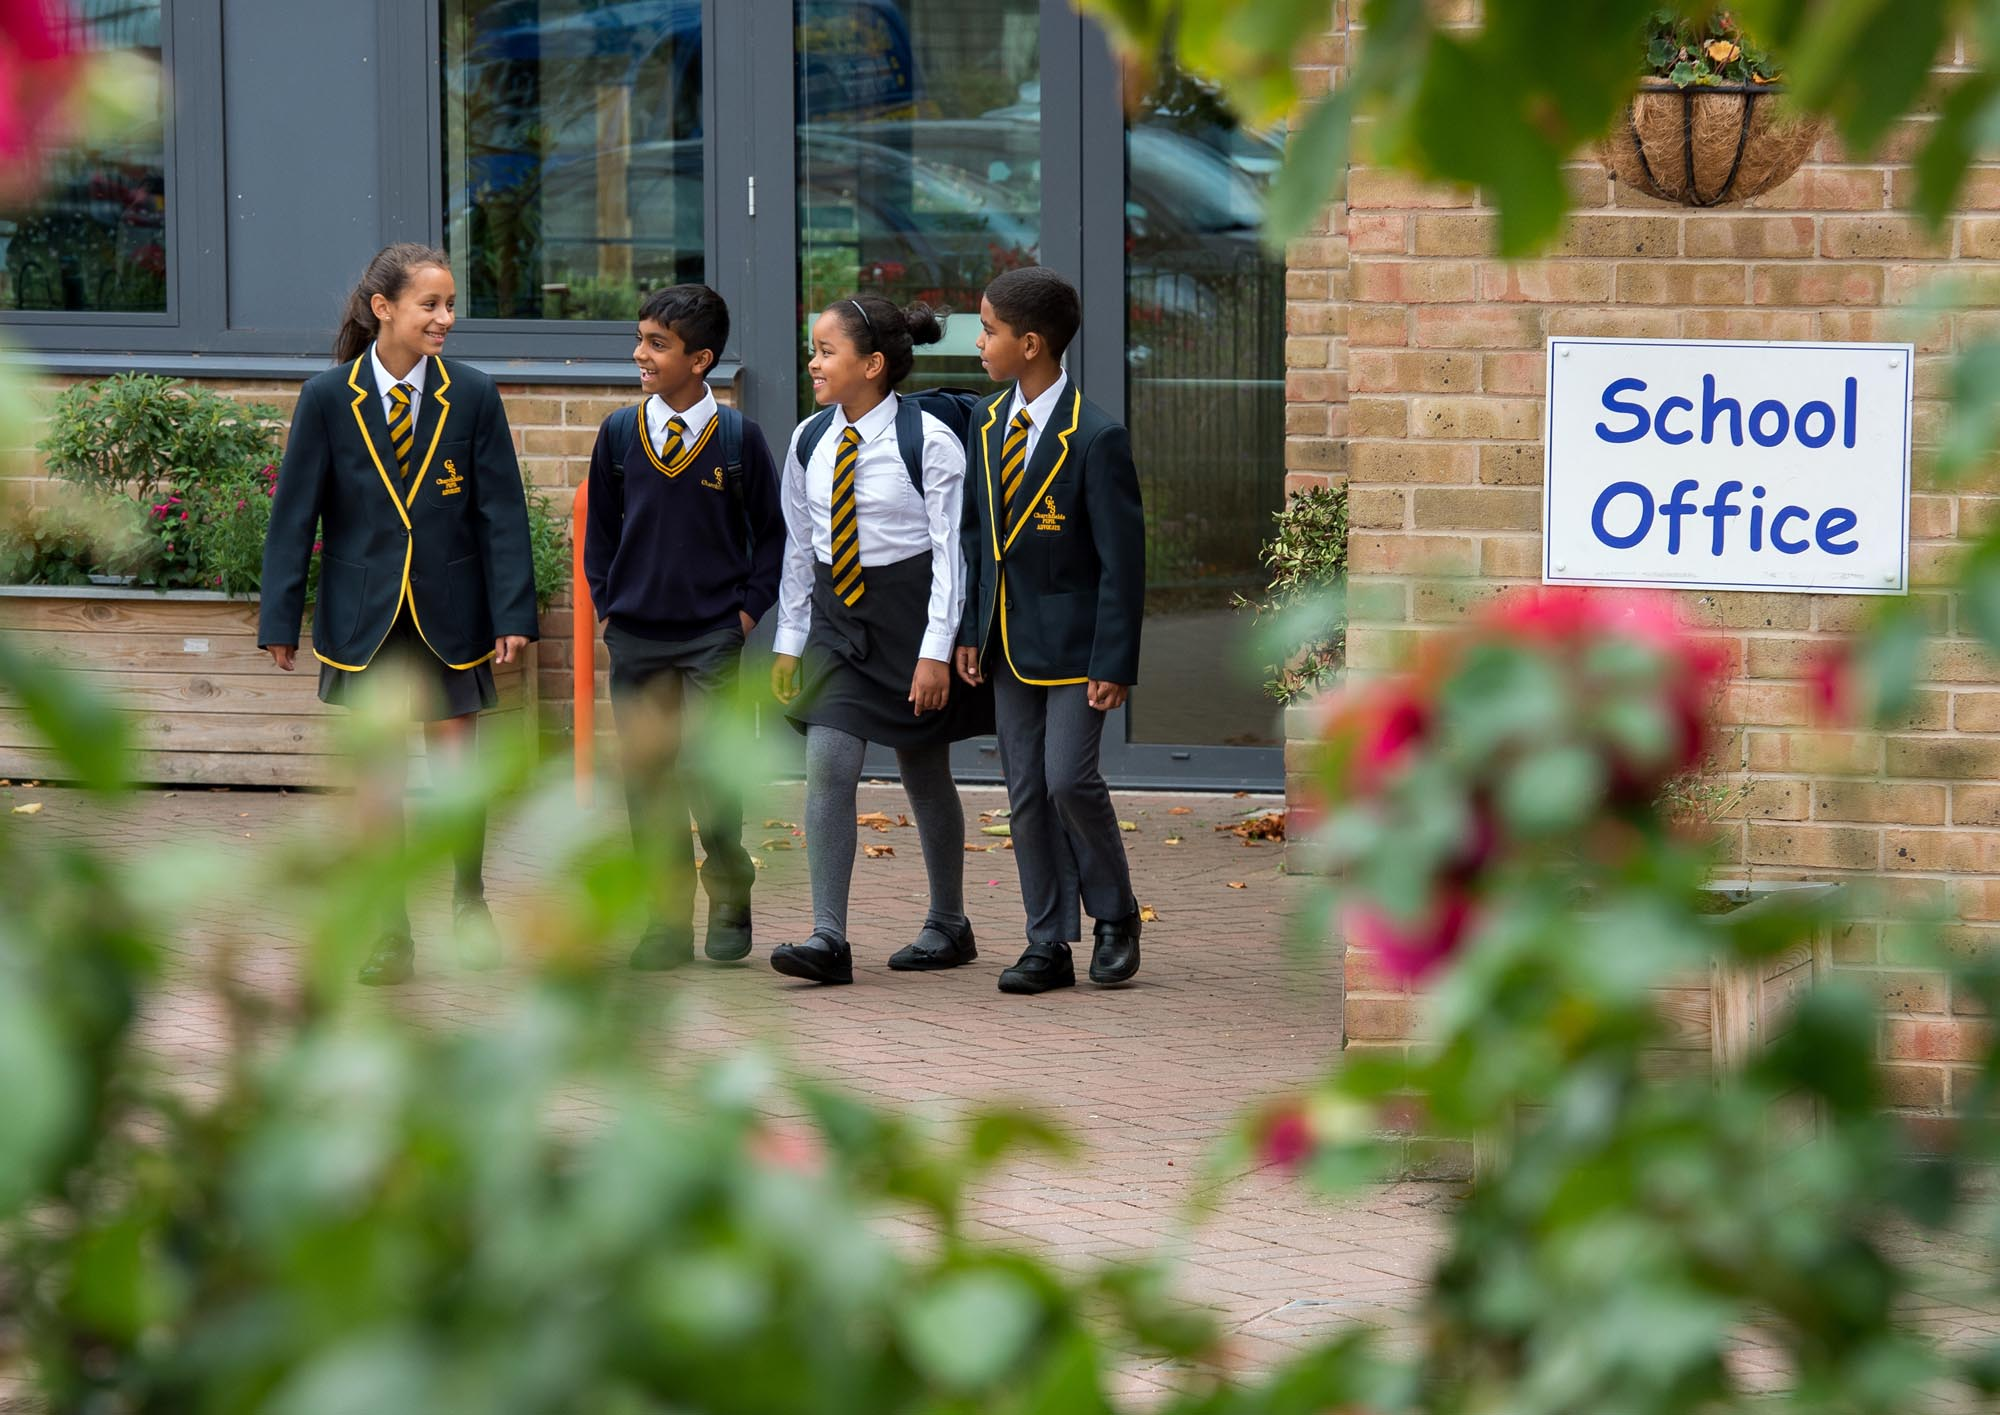 Group of children walking out of School framed by flowers